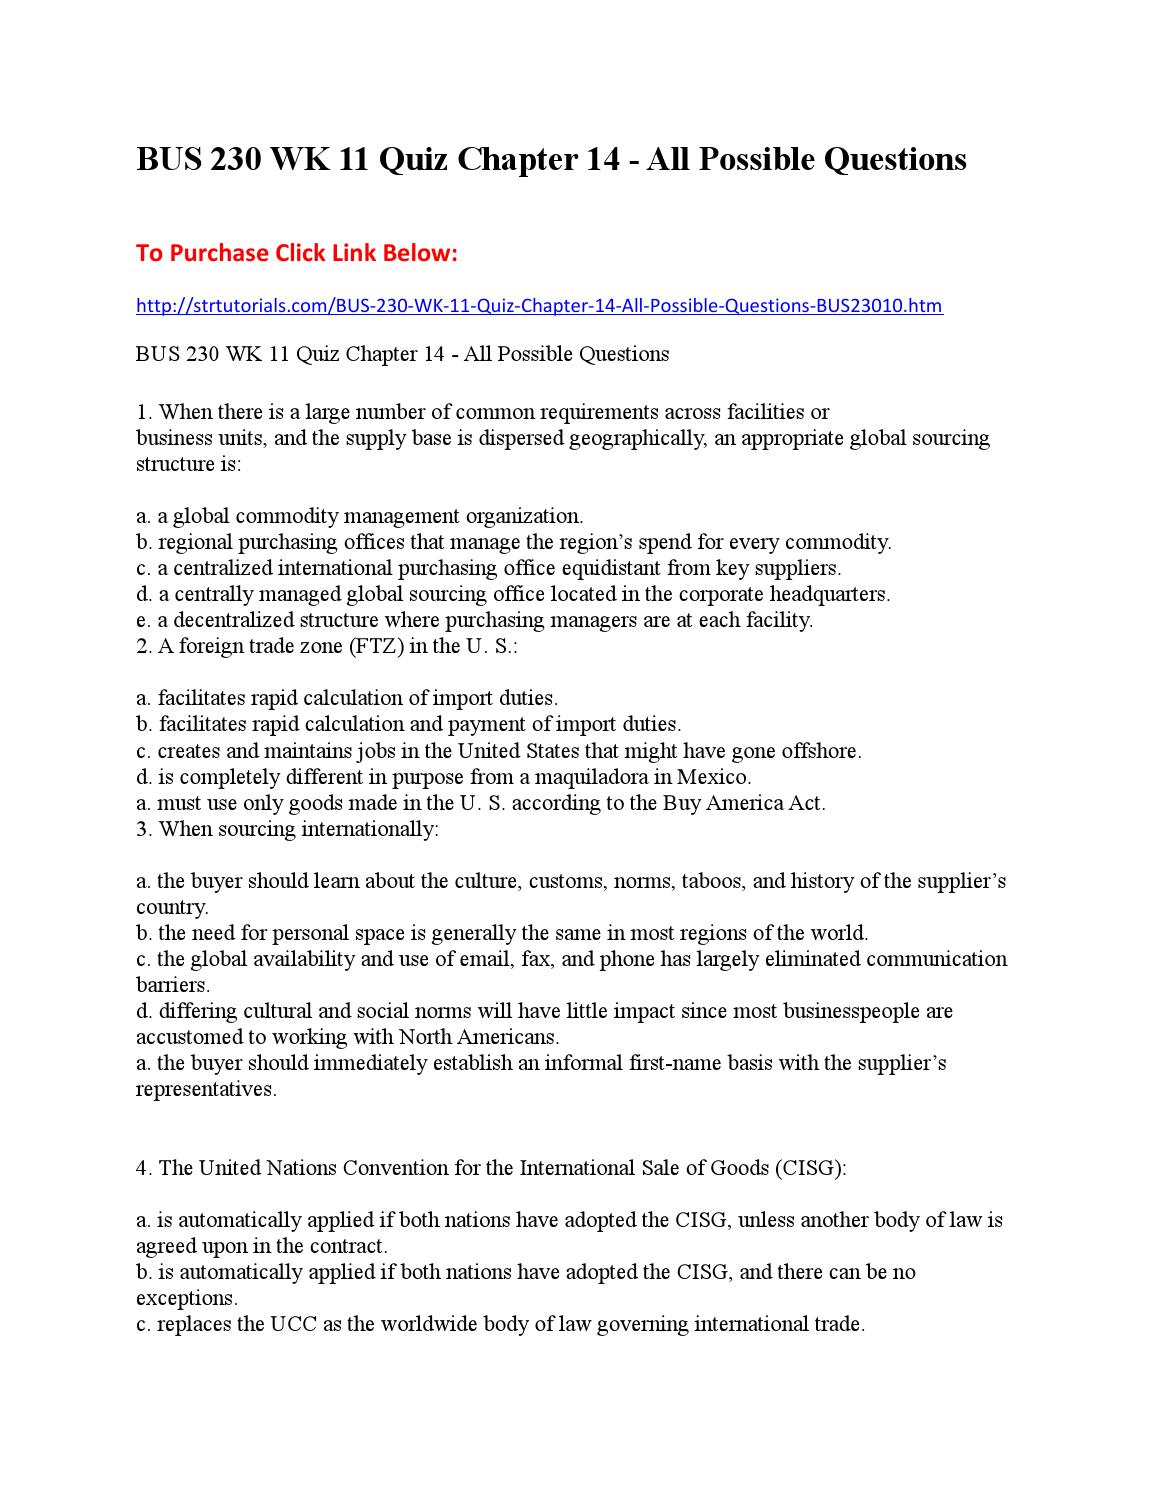 chapter 2 international management quiz View notes - mng00313 international management weekly quiz 2 from mng 00313 at southern cross competencies of company and organizational capabilities of company q4) cooperation agreement is.